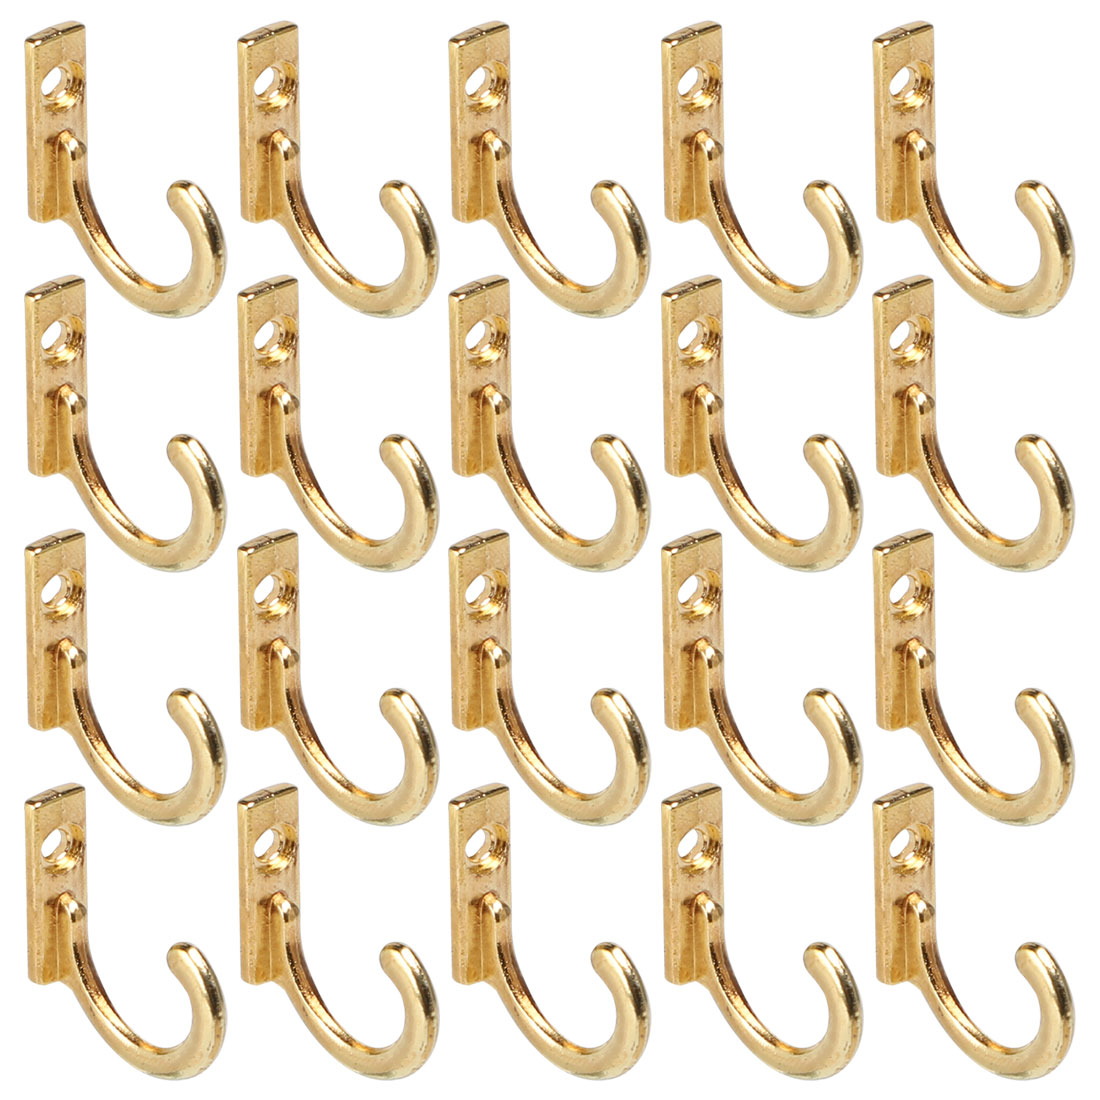 20pcs Robe Hooks Zinc Alloy Hook Key Bathroom DIY Hanger w Screws, Gold Tone